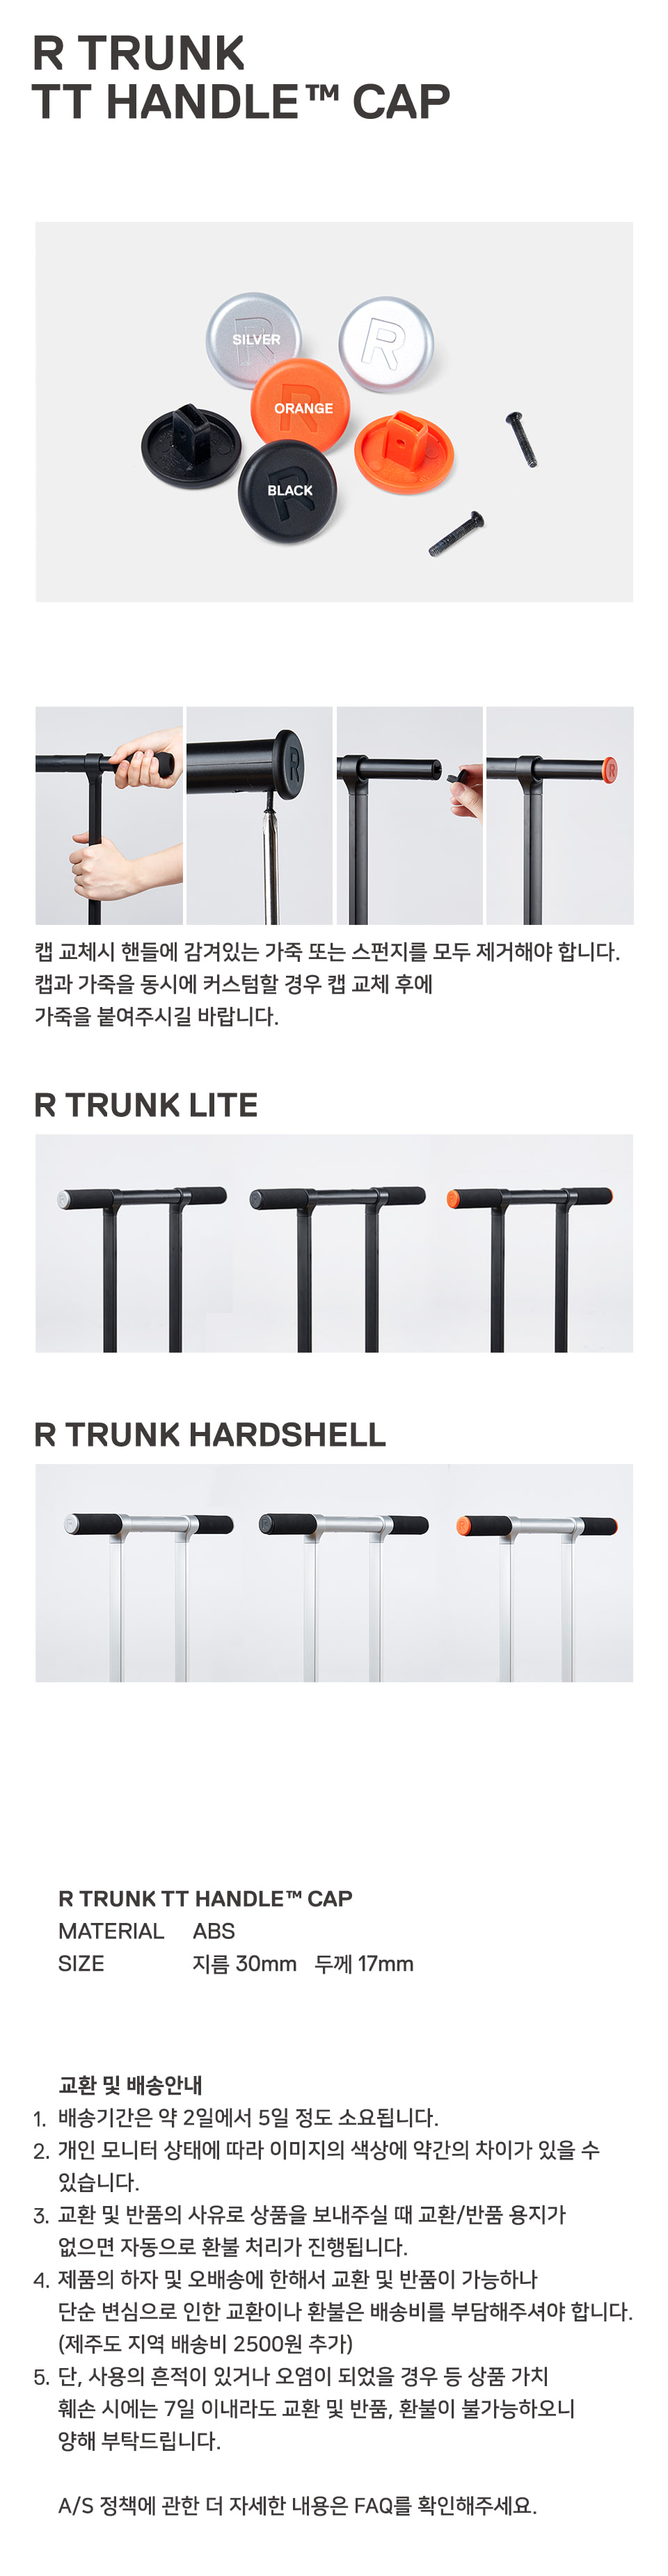 로우로우(RAWROW) R TRUNK TT HANDLE CAP SET(3 color)